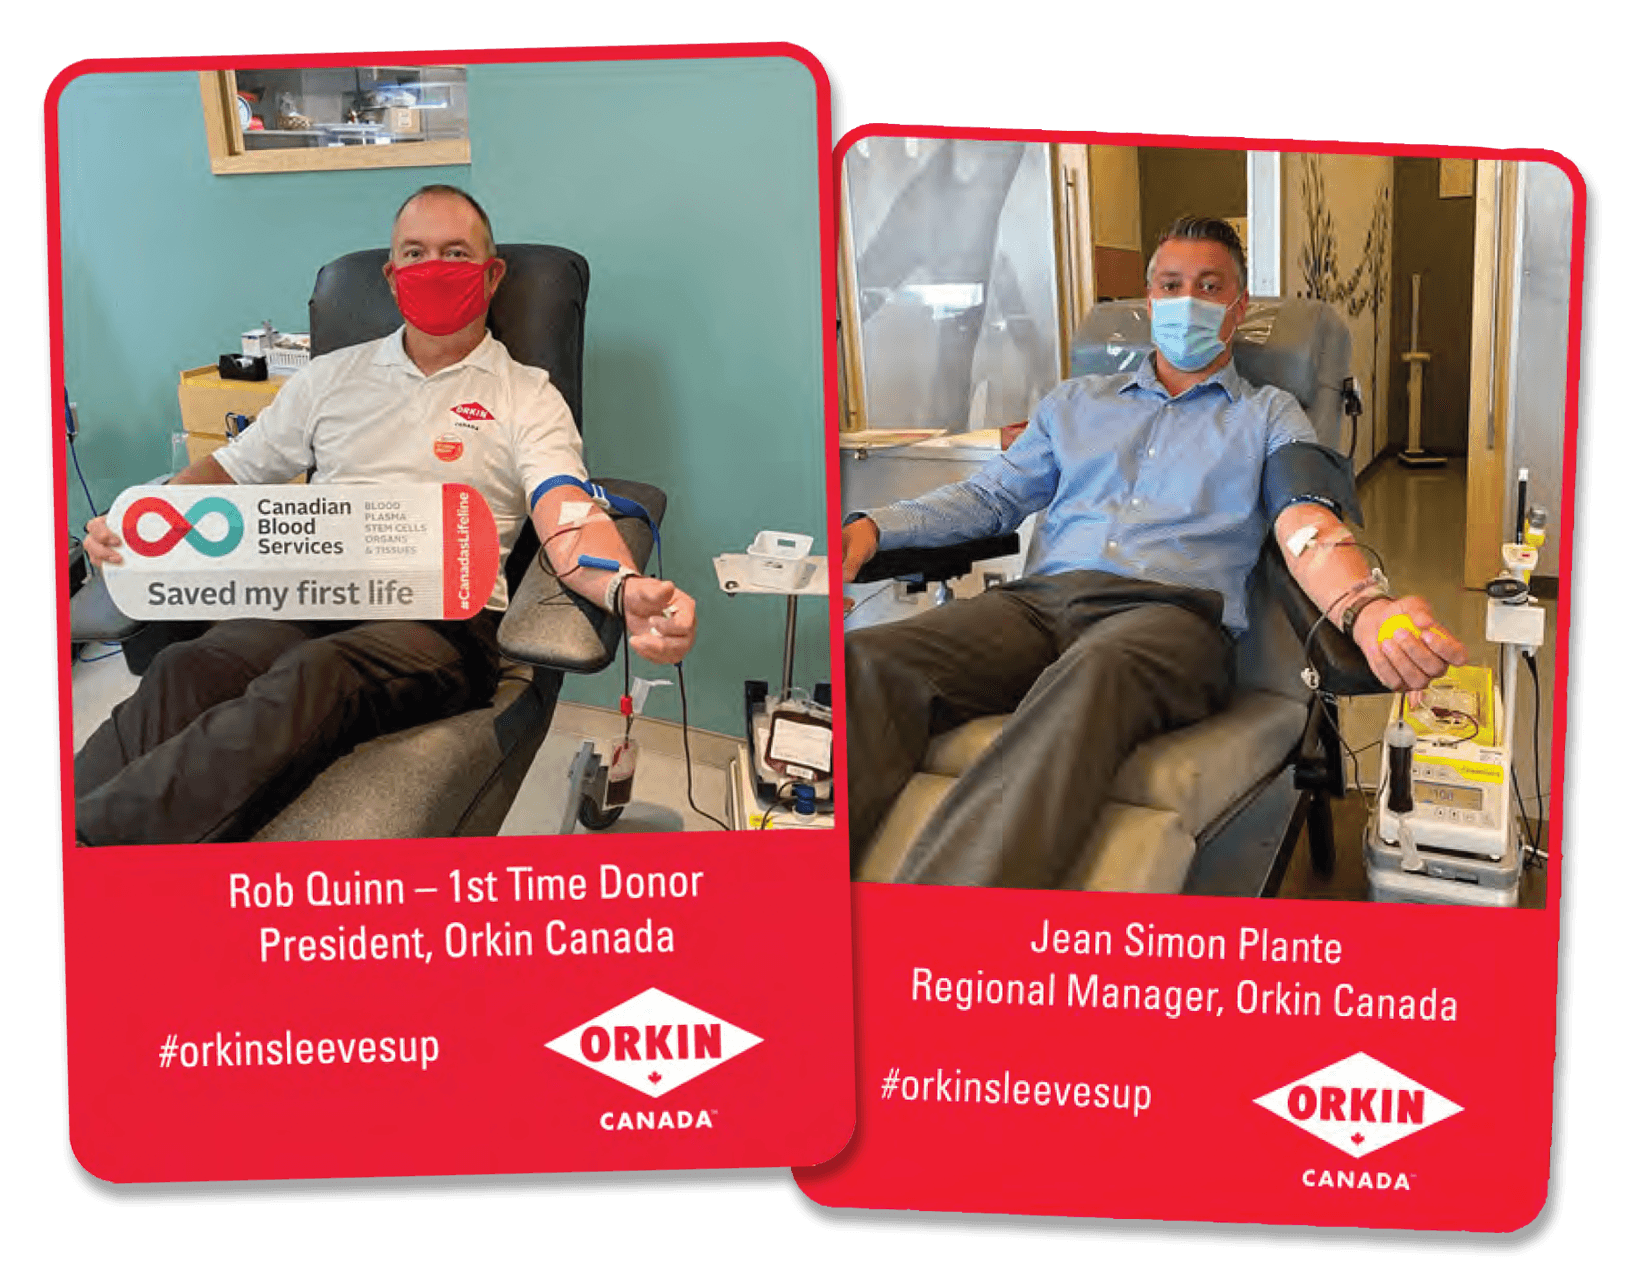 Images of Orkin Canada President Rob Quinn and Regional Manager of Eastern Canada Jean Simon Plante donating blood